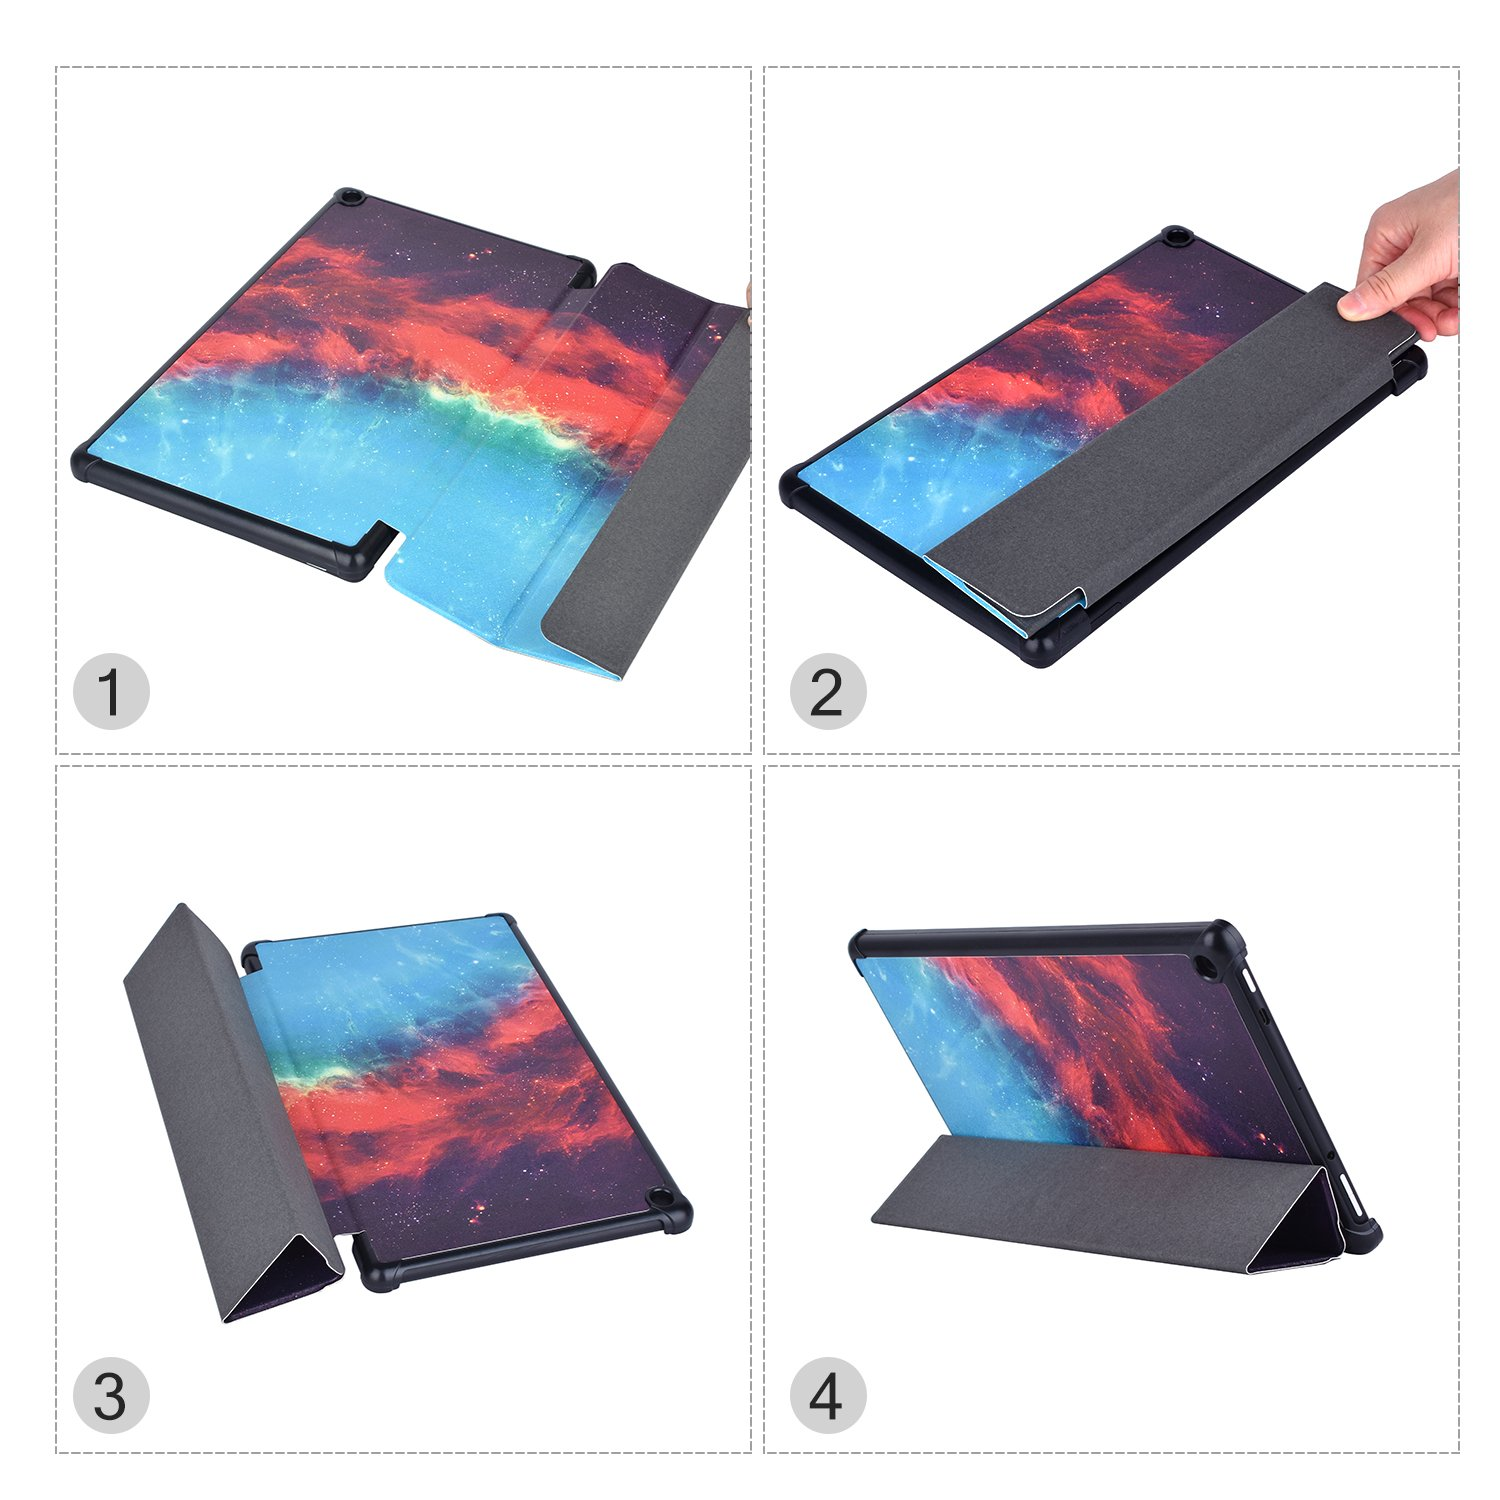 Dopup Fire 10 Case for All-New Fire HD 10 Tablet (7th Generation, 2017 Release),Protective Standing Cover with Auto Wake/Sleep Function (Galaxy)